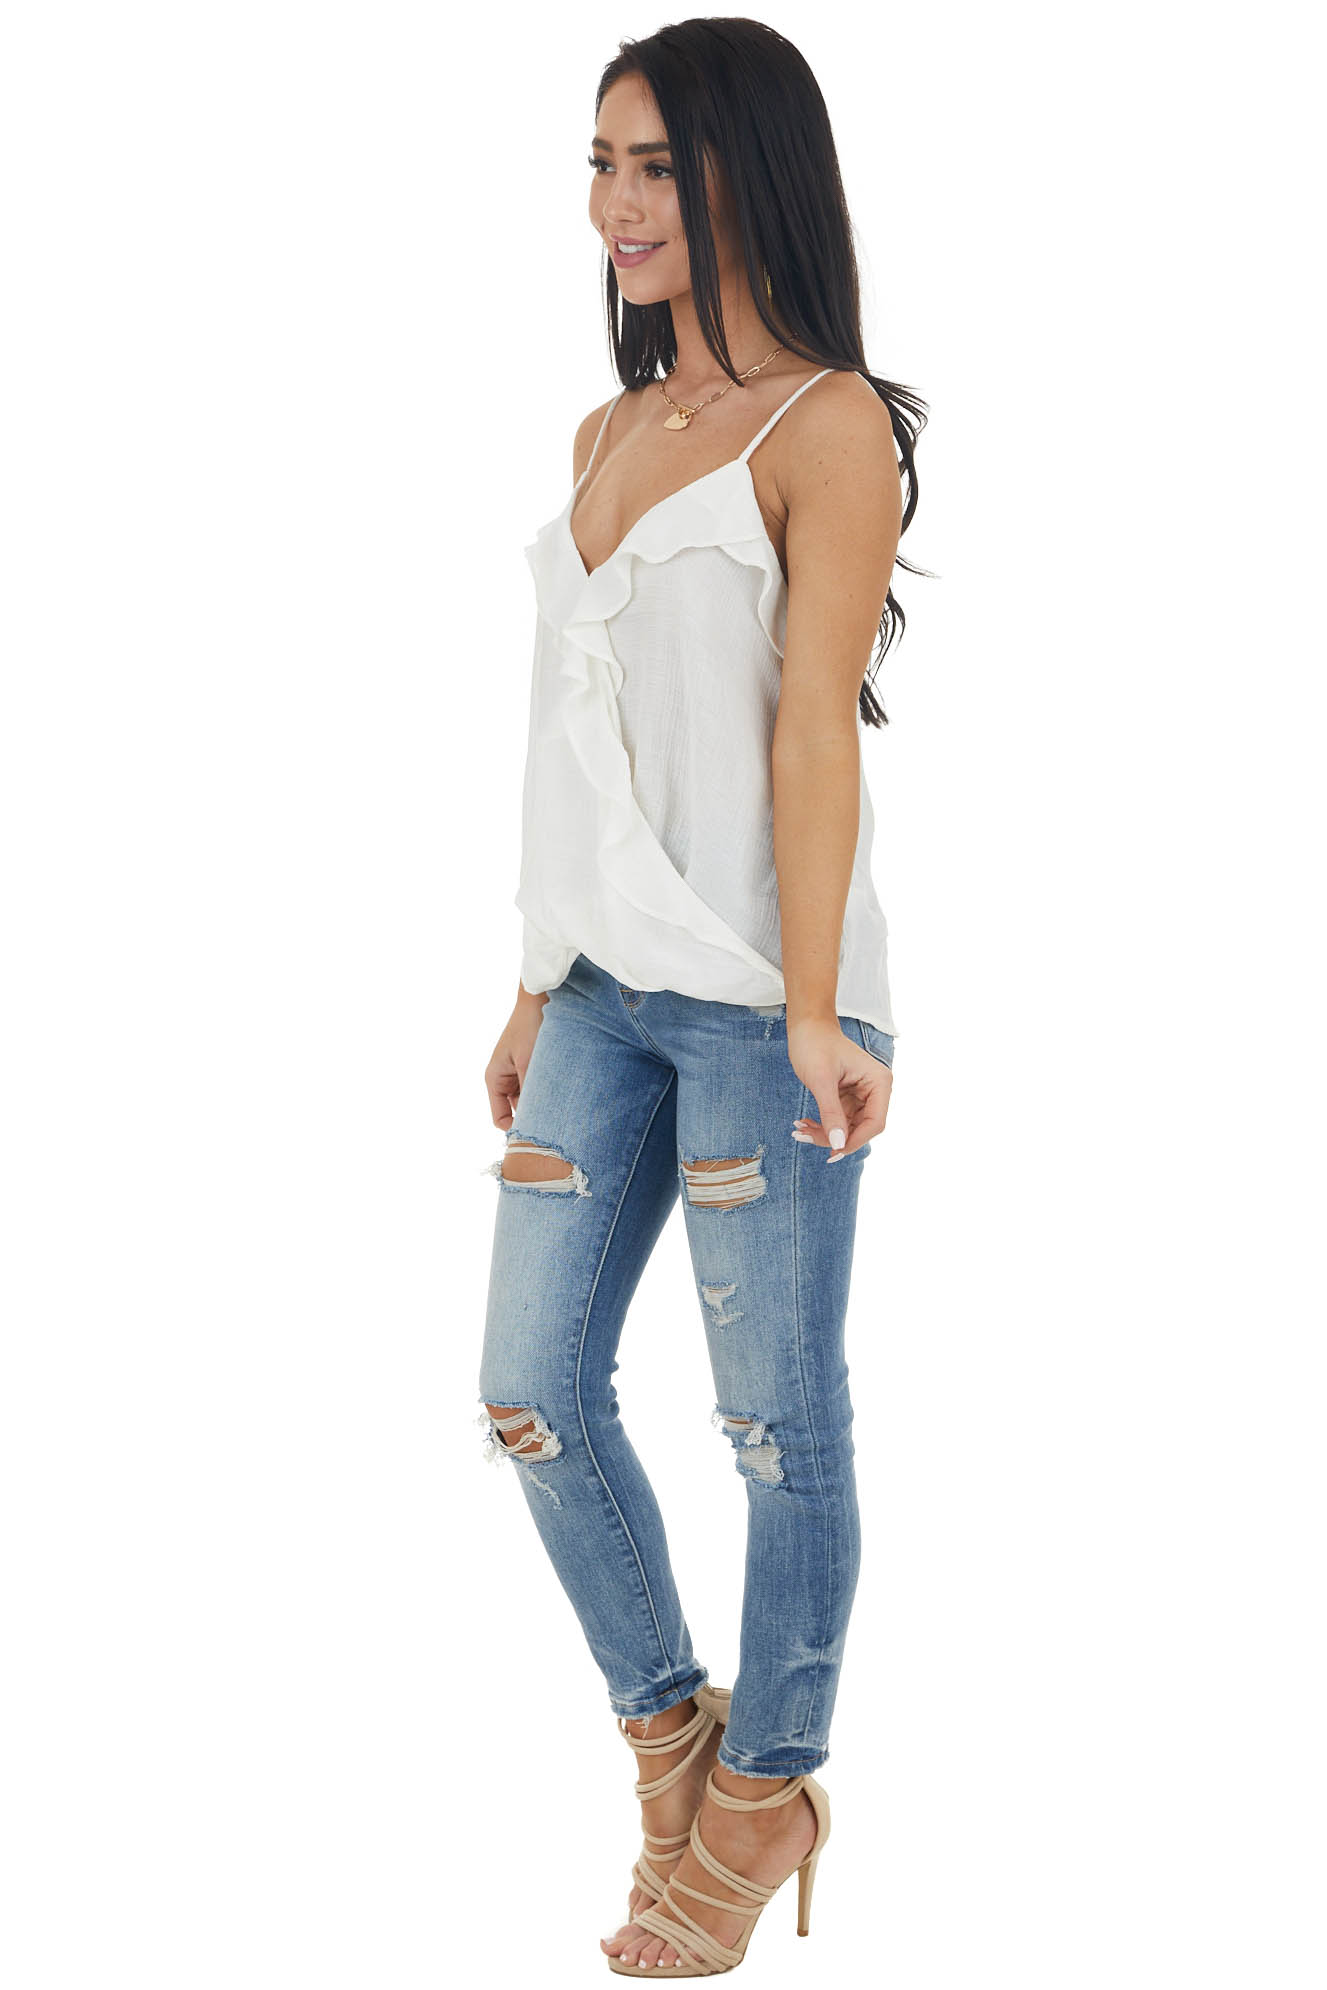 Pearl White Sleeveless Surplice Woven Top with Ruffle Detail